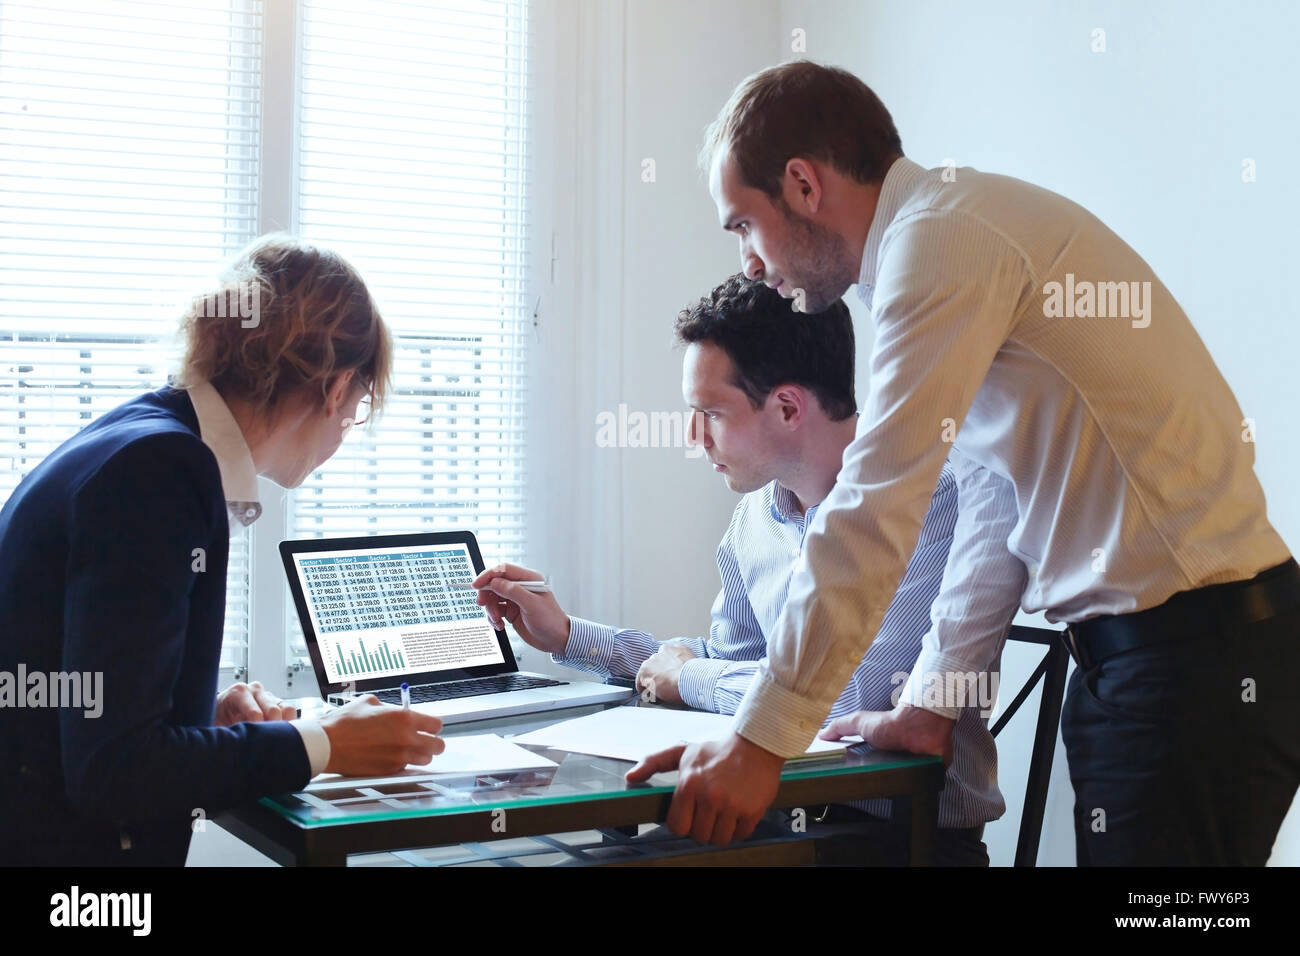 teamwork, business meeting, team working on financial plan - Stock Image